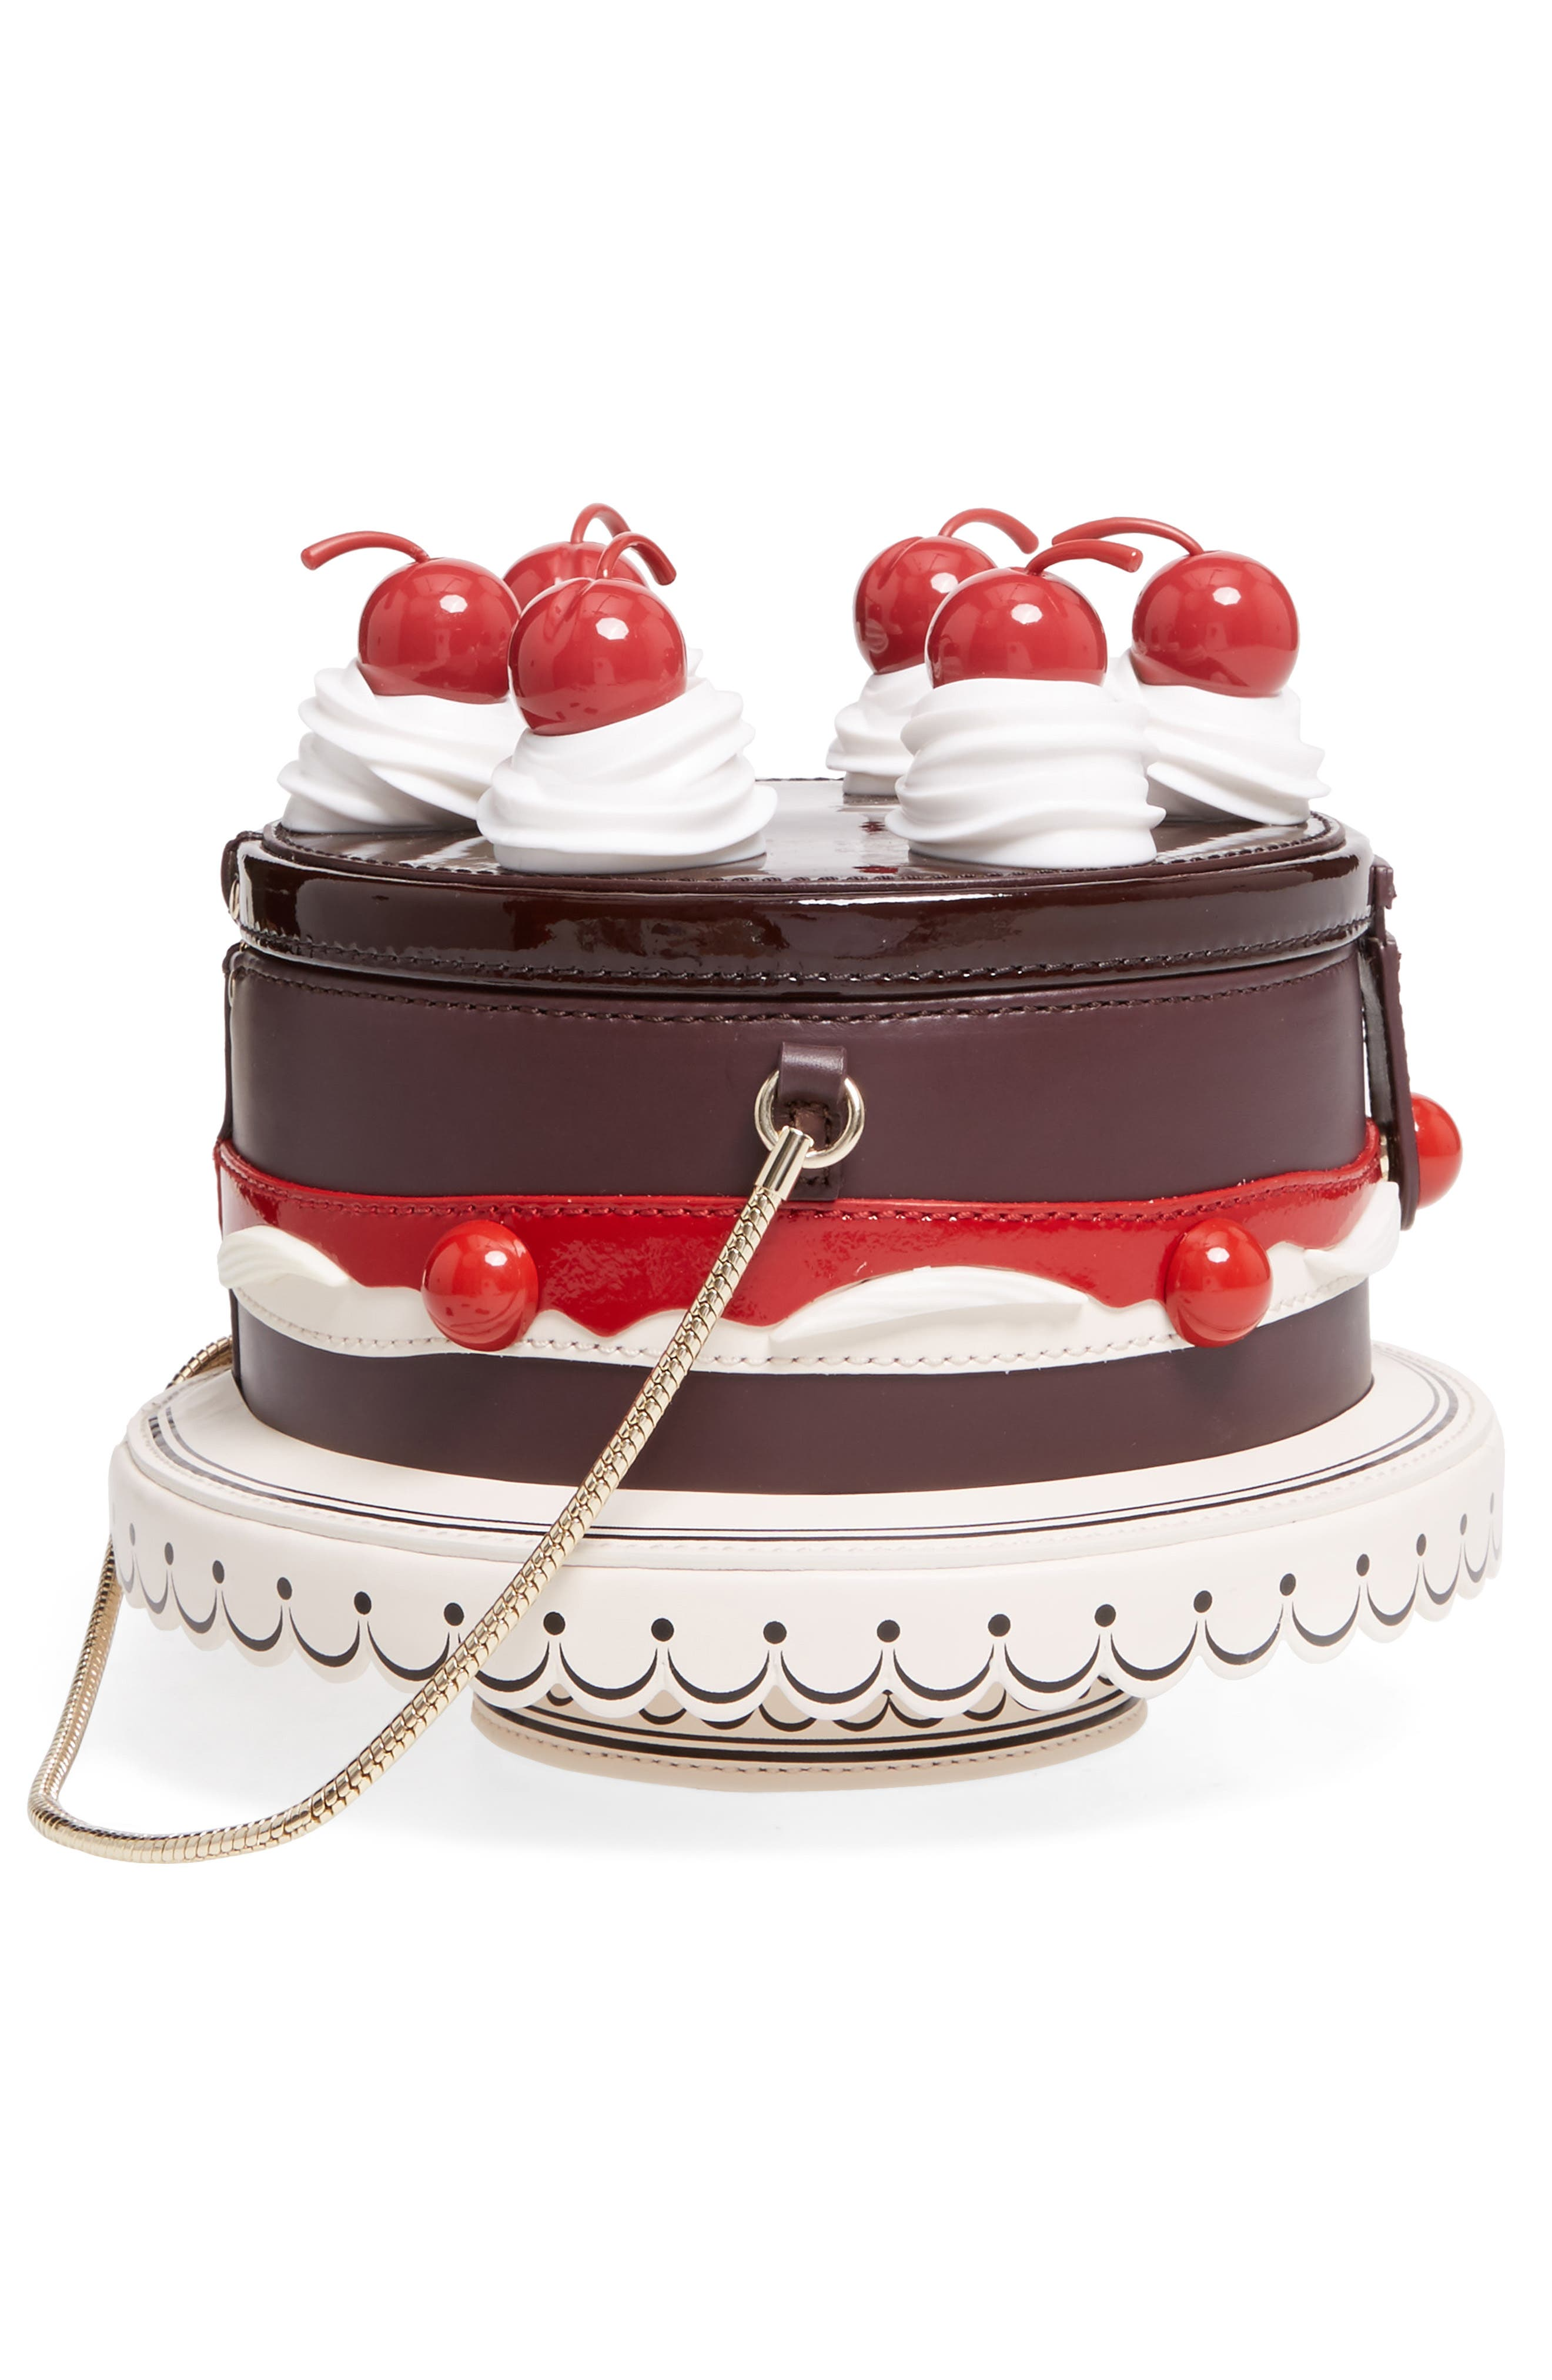 ma cherie - cherry cake leather shoulder bag,                             Alternate thumbnail 5, color,                             200